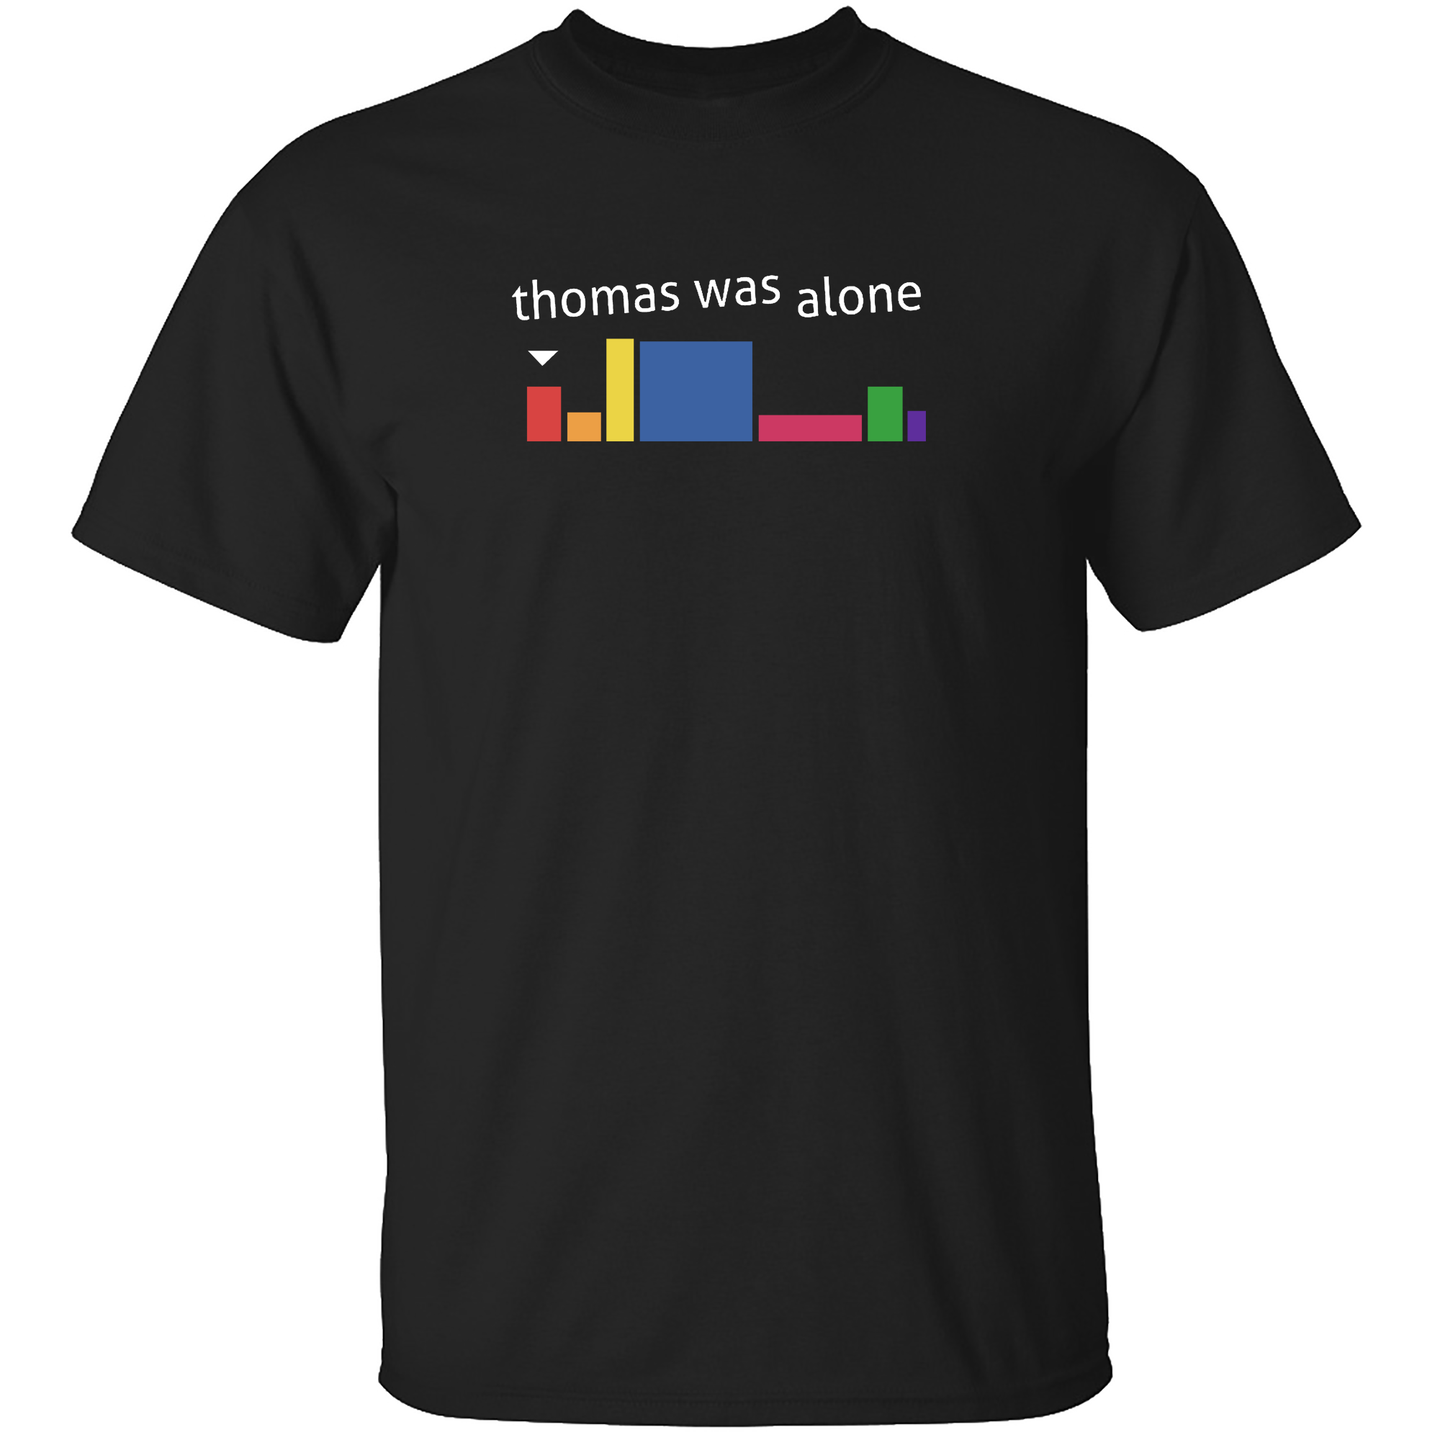 Thomas Was Alone - Video Game T-Shirt